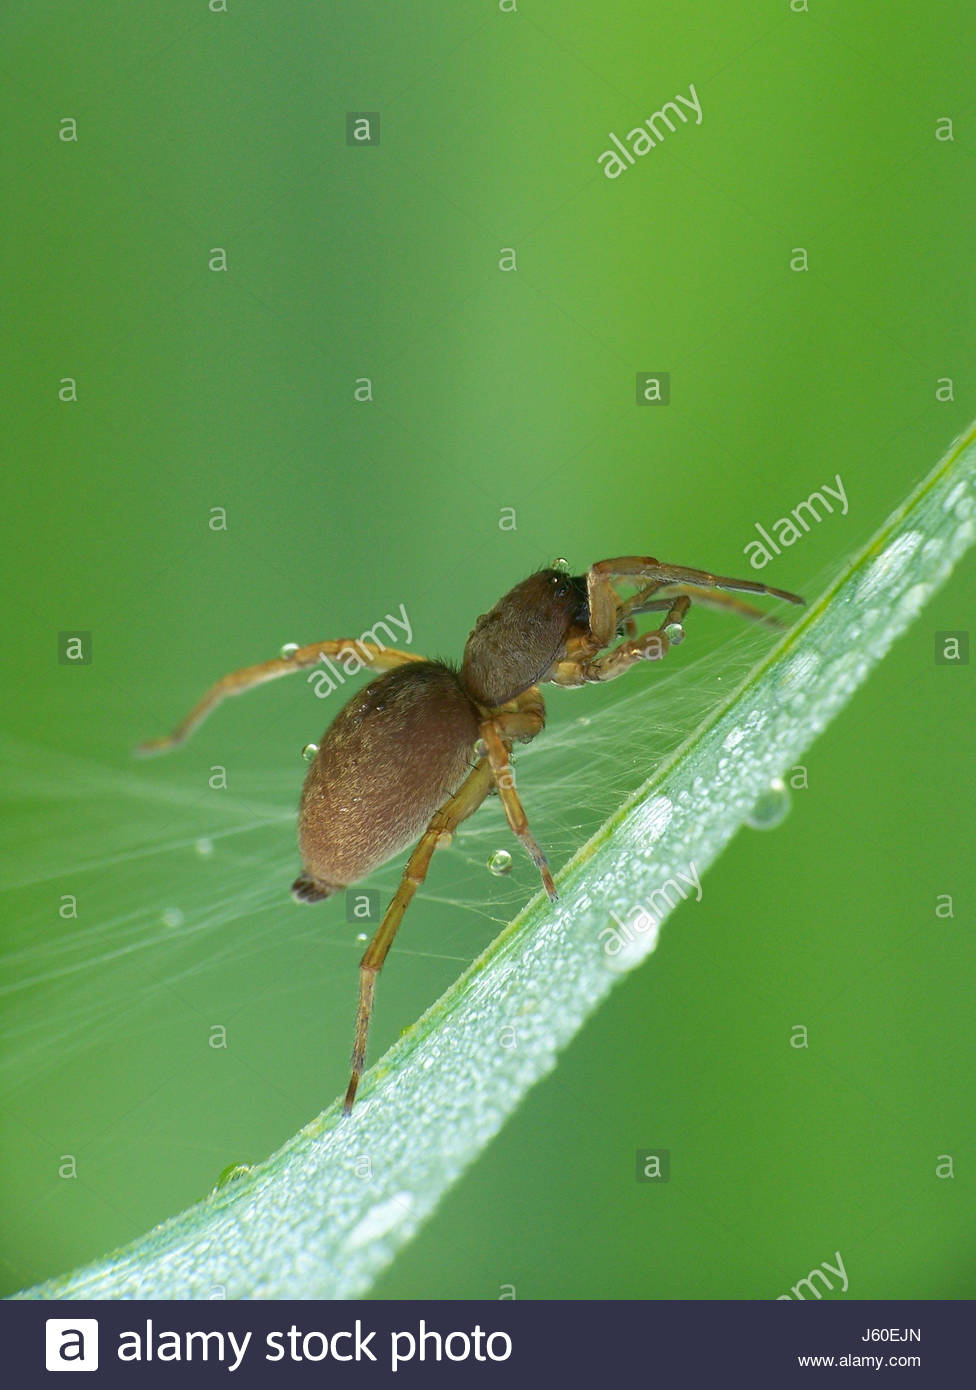 insect spider wet dewdrop blade of grass meadow grass lawn green legs insect - Stock Image